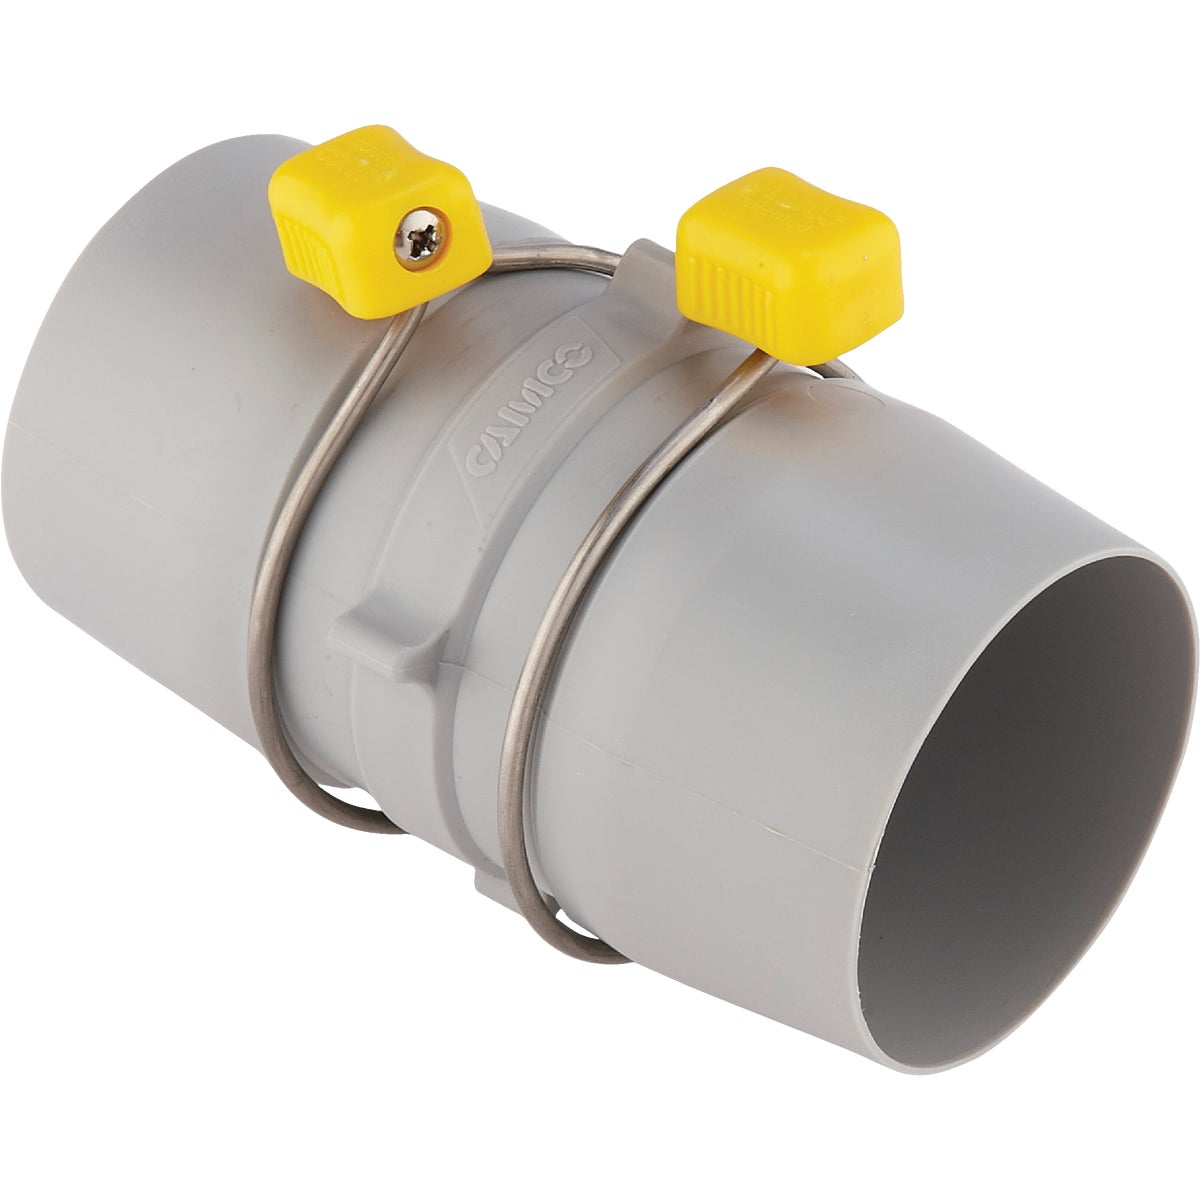 RV INTERNAL HOSE COUPLER - 39163 by Camco Mfg.